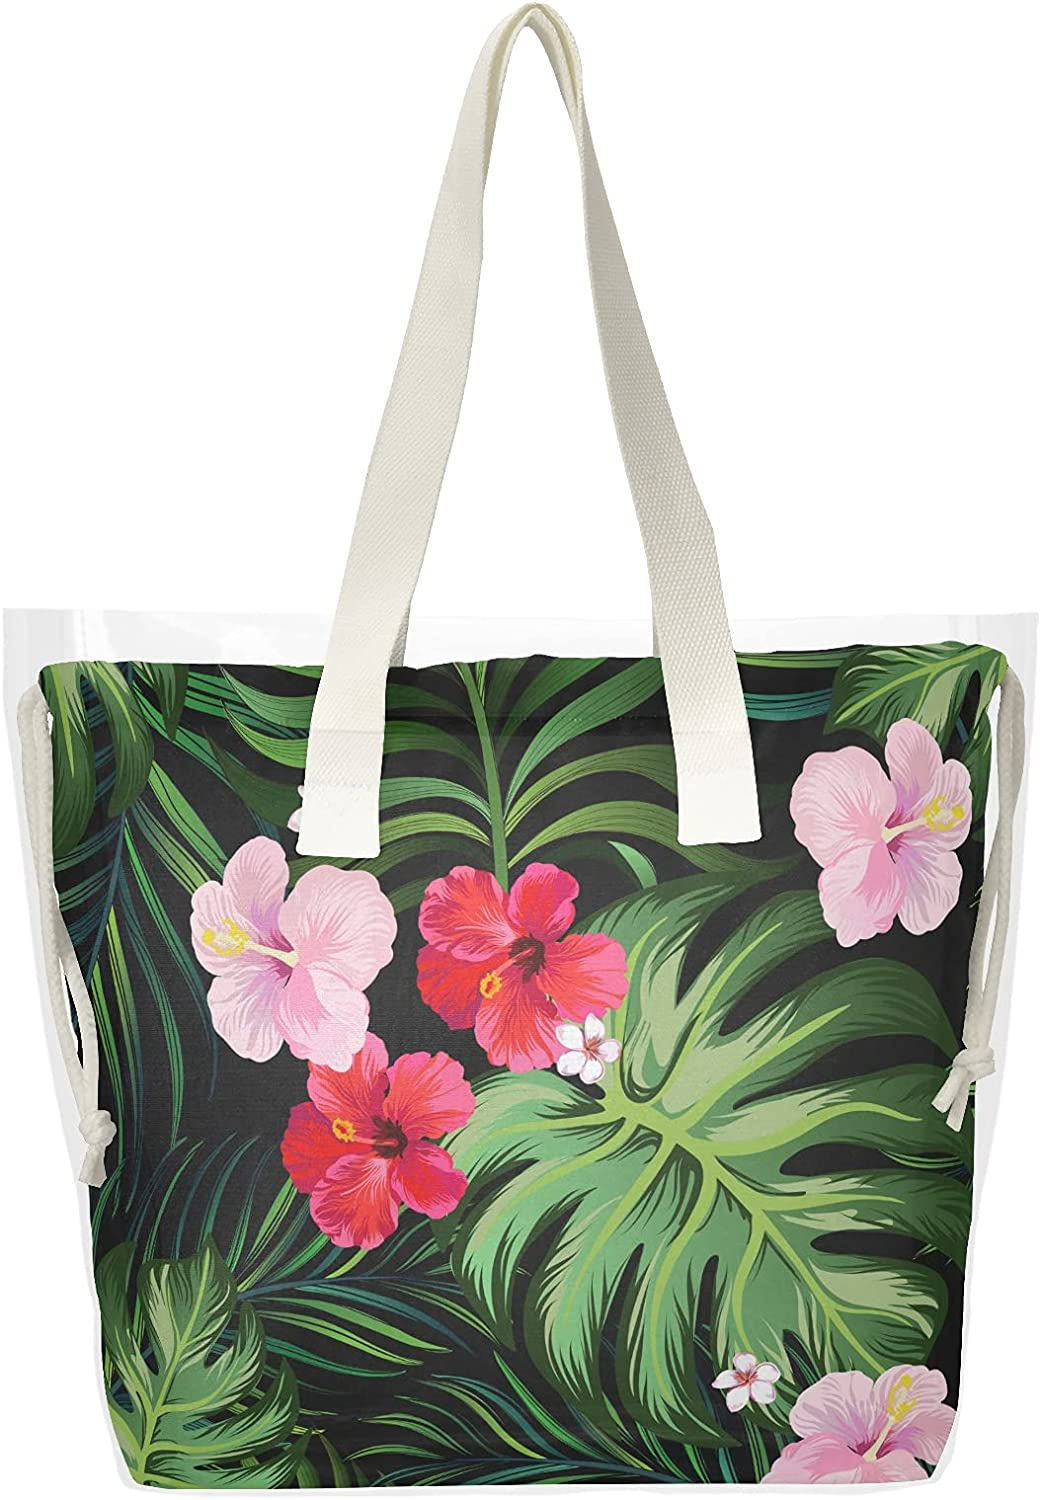 Tropical Palm Leaves Hibiscus Women Han Department store Max 54% OFF Bags Clear Tote Shoulder